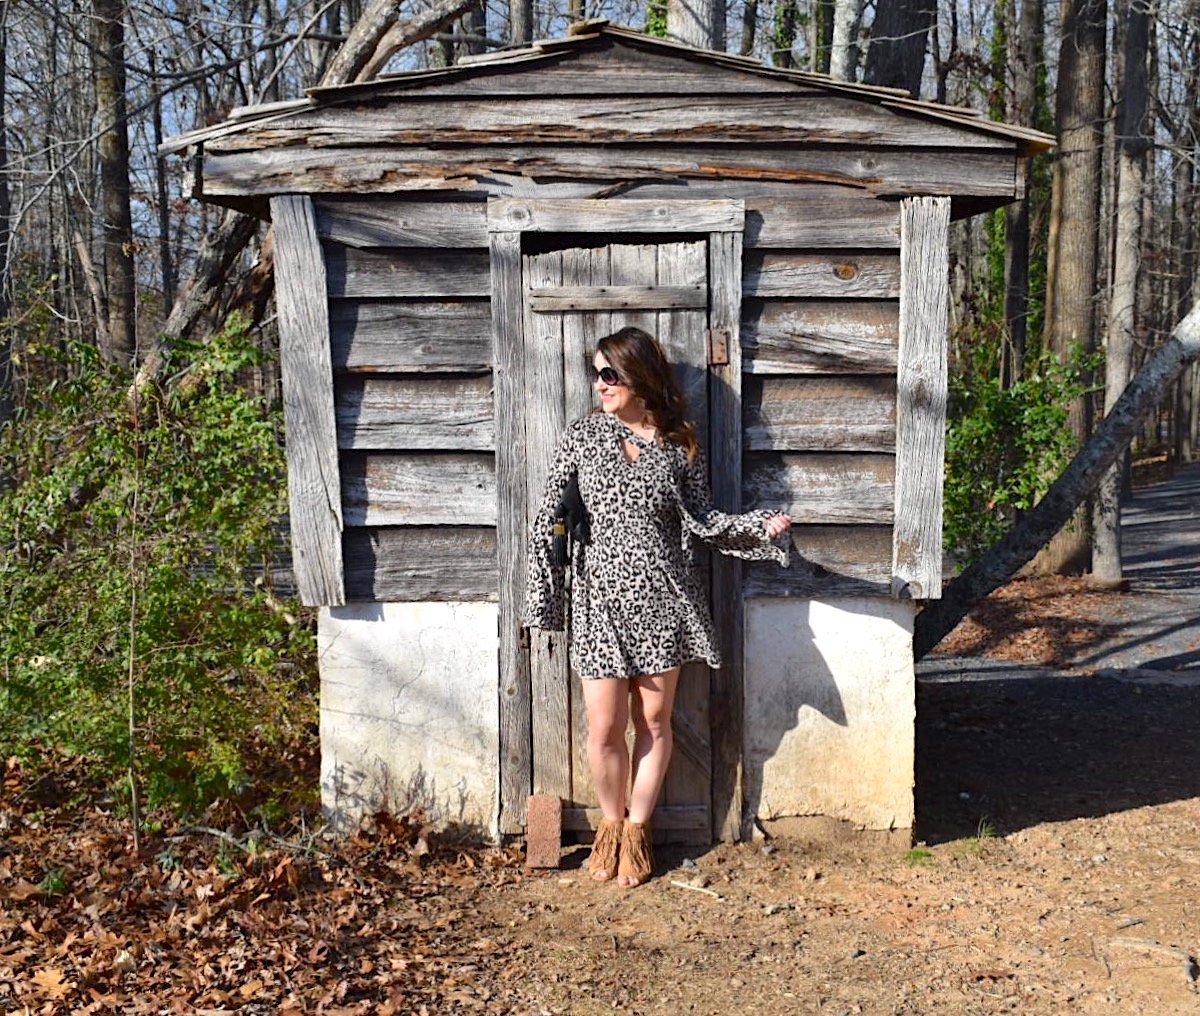 Kim Bishop of Crockpot Empire wearing a Fabrik leopard print dress with bell sleeves paired with Baublebar tassel earrings and a black India Hicks leather tassel clutch in front of a wooden shed